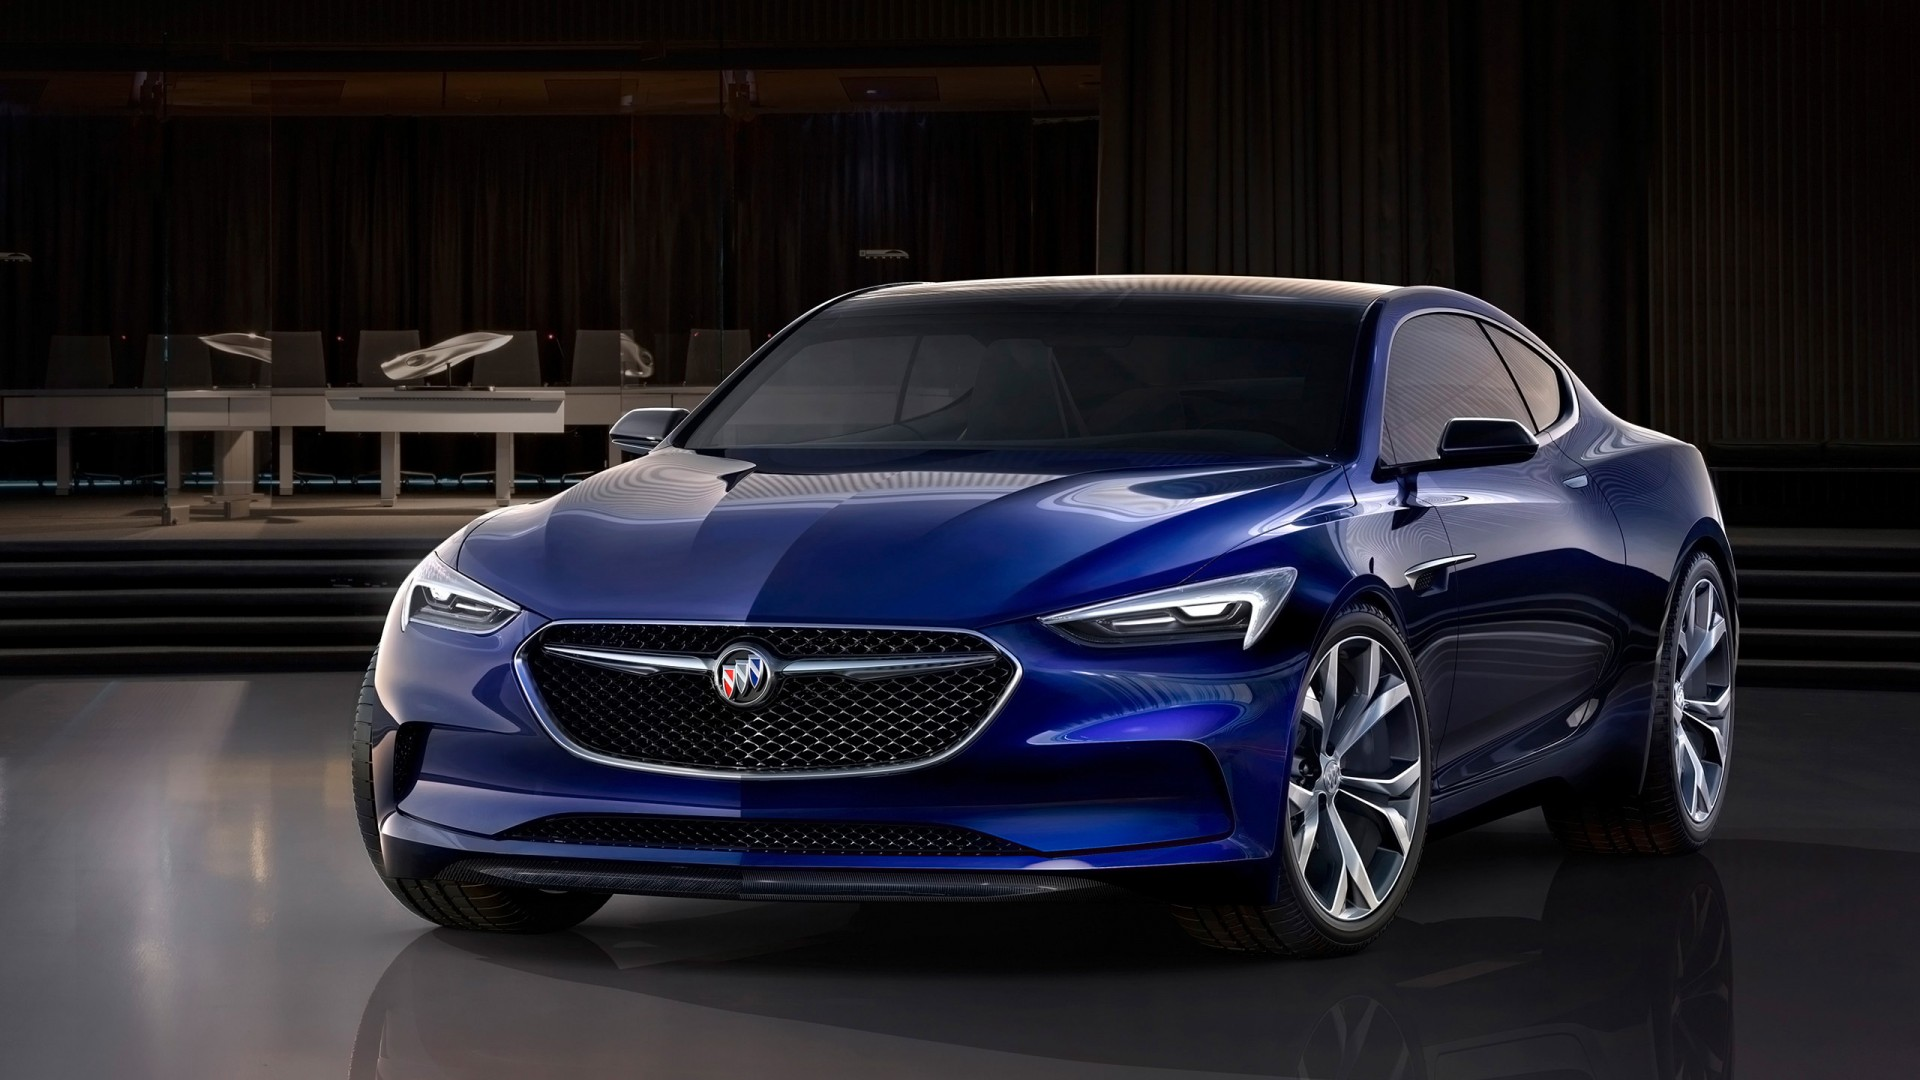 2016 Buick Avista Concept 3 Wallpaper | HD Car Wallpapers ...